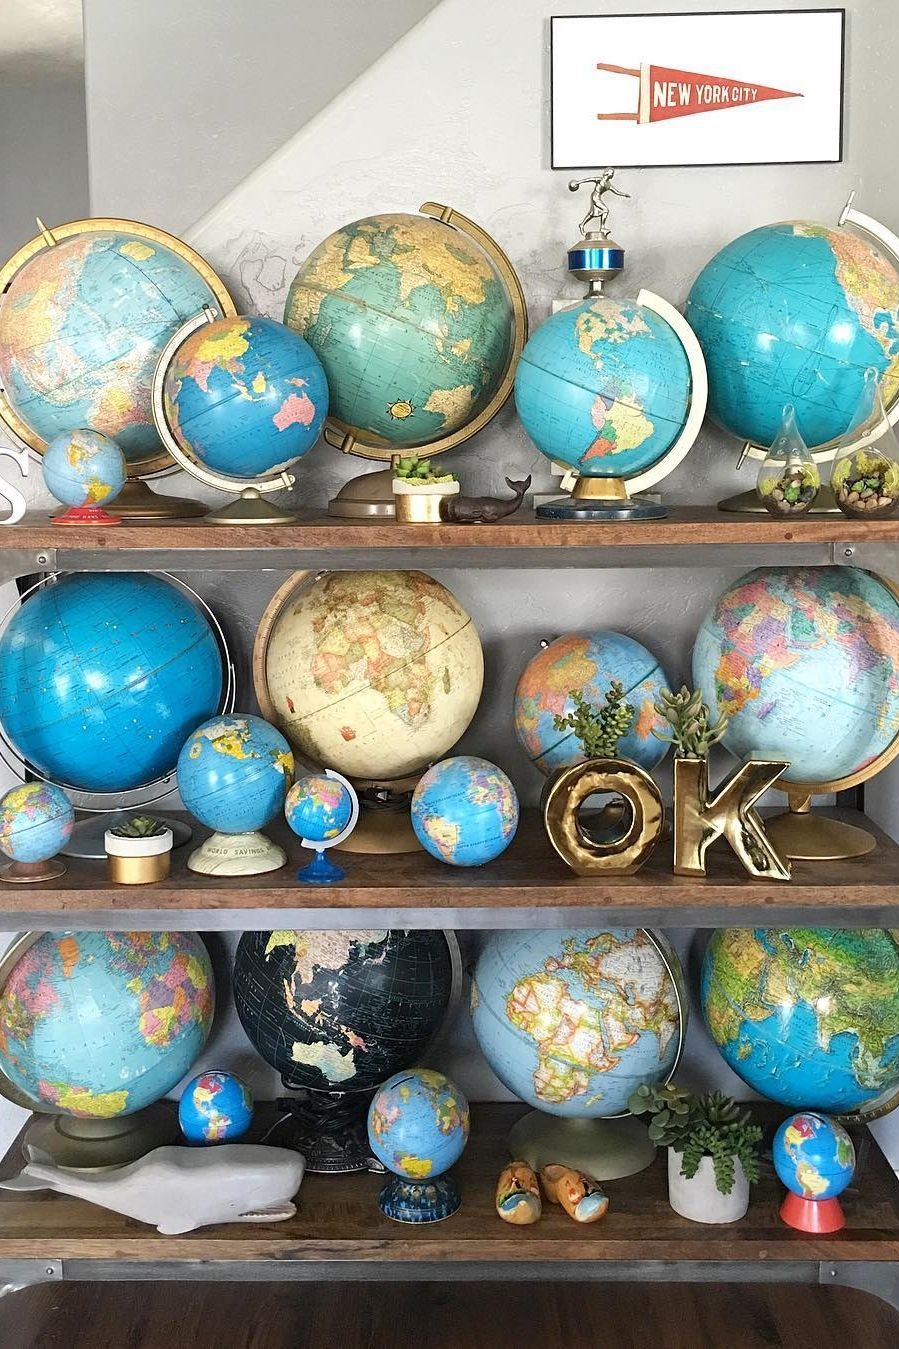 Vintage world globes for a coffee room interior inspiration vintage world globes for a coffee room gumiabroncs Choice Image